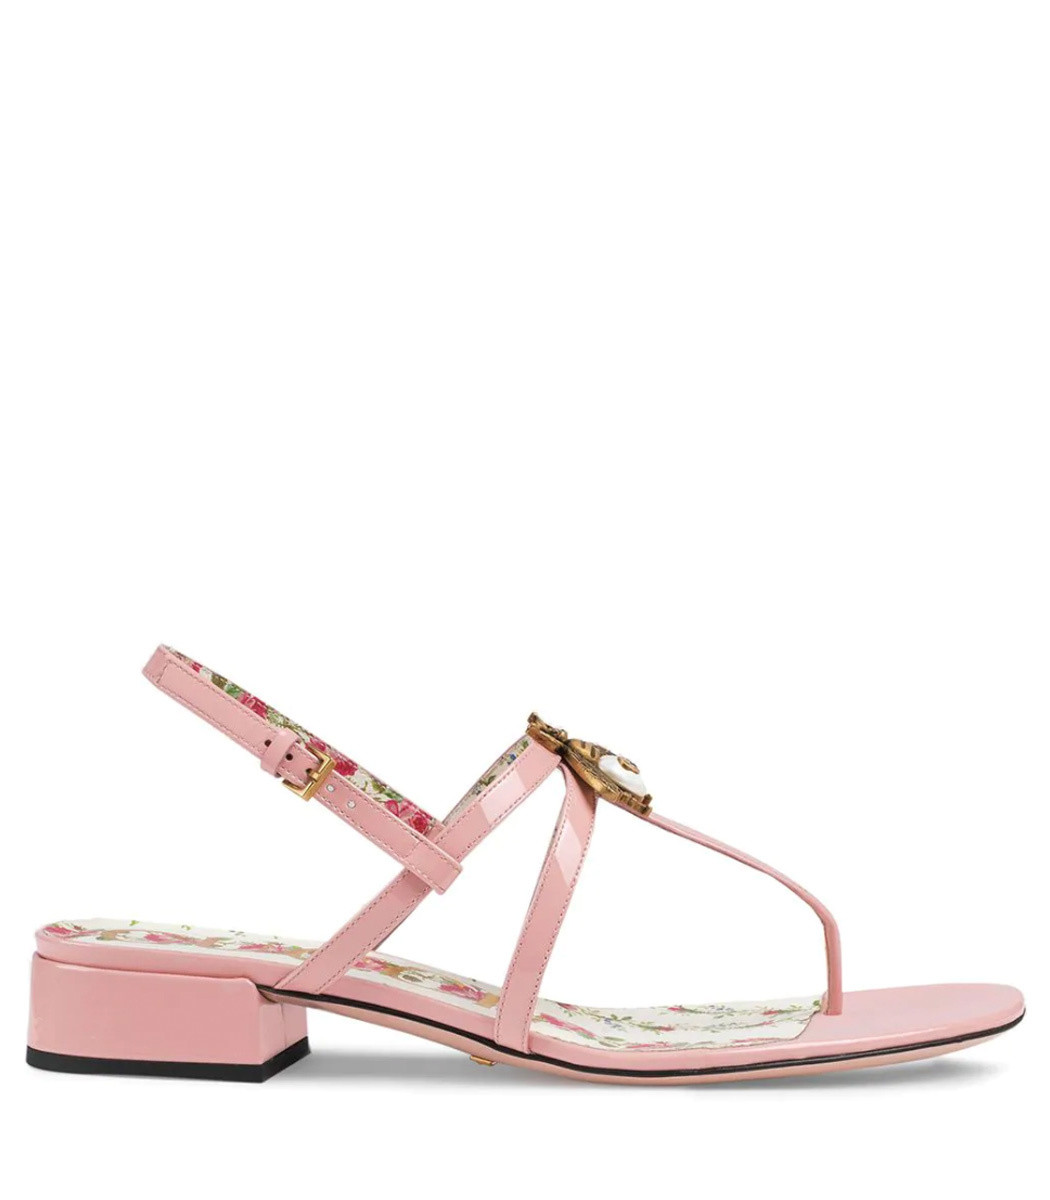 57a493c3f409 Gucci Bee Patent Leather Sandals - Light Pink Adjustable Strap Sandals